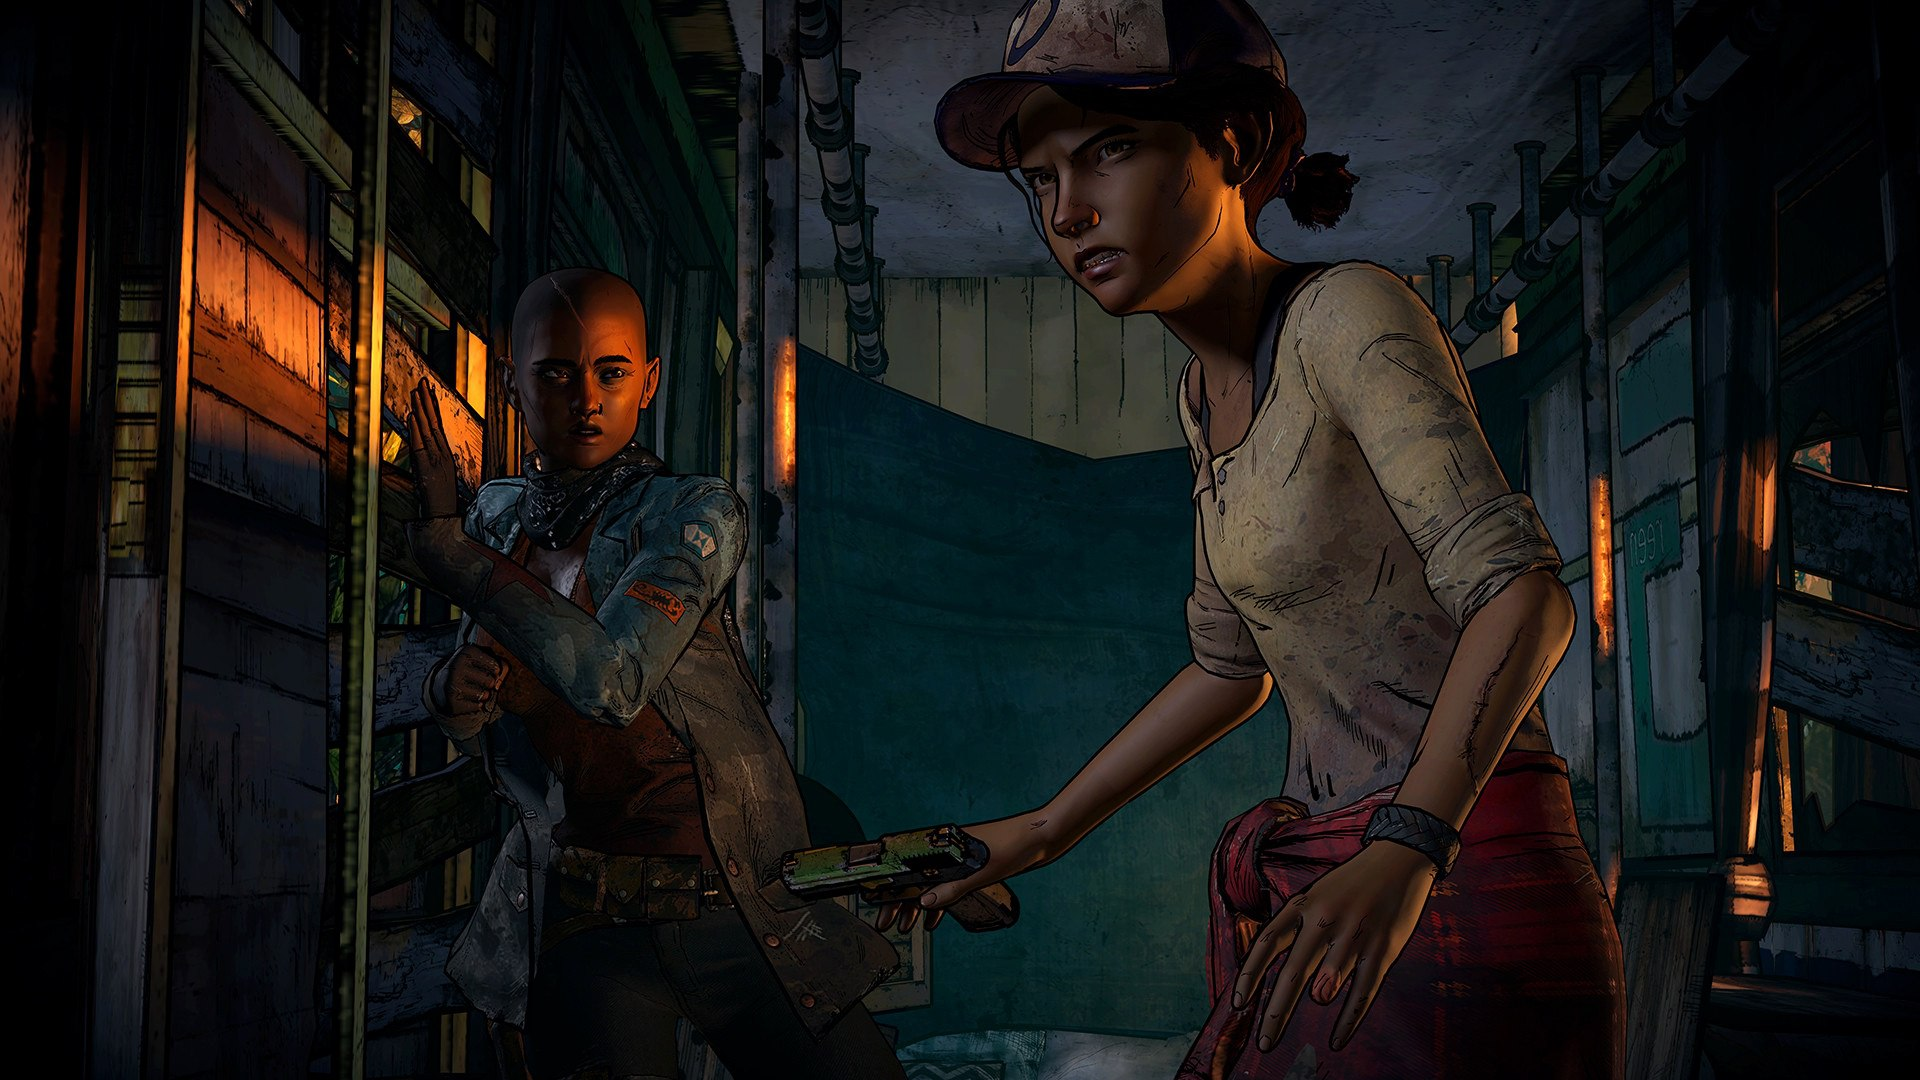 Скриншот к игре The Walking Dead: A New Frontier - Episode 1-2 (2016) PC | RePack от R.G. Механики